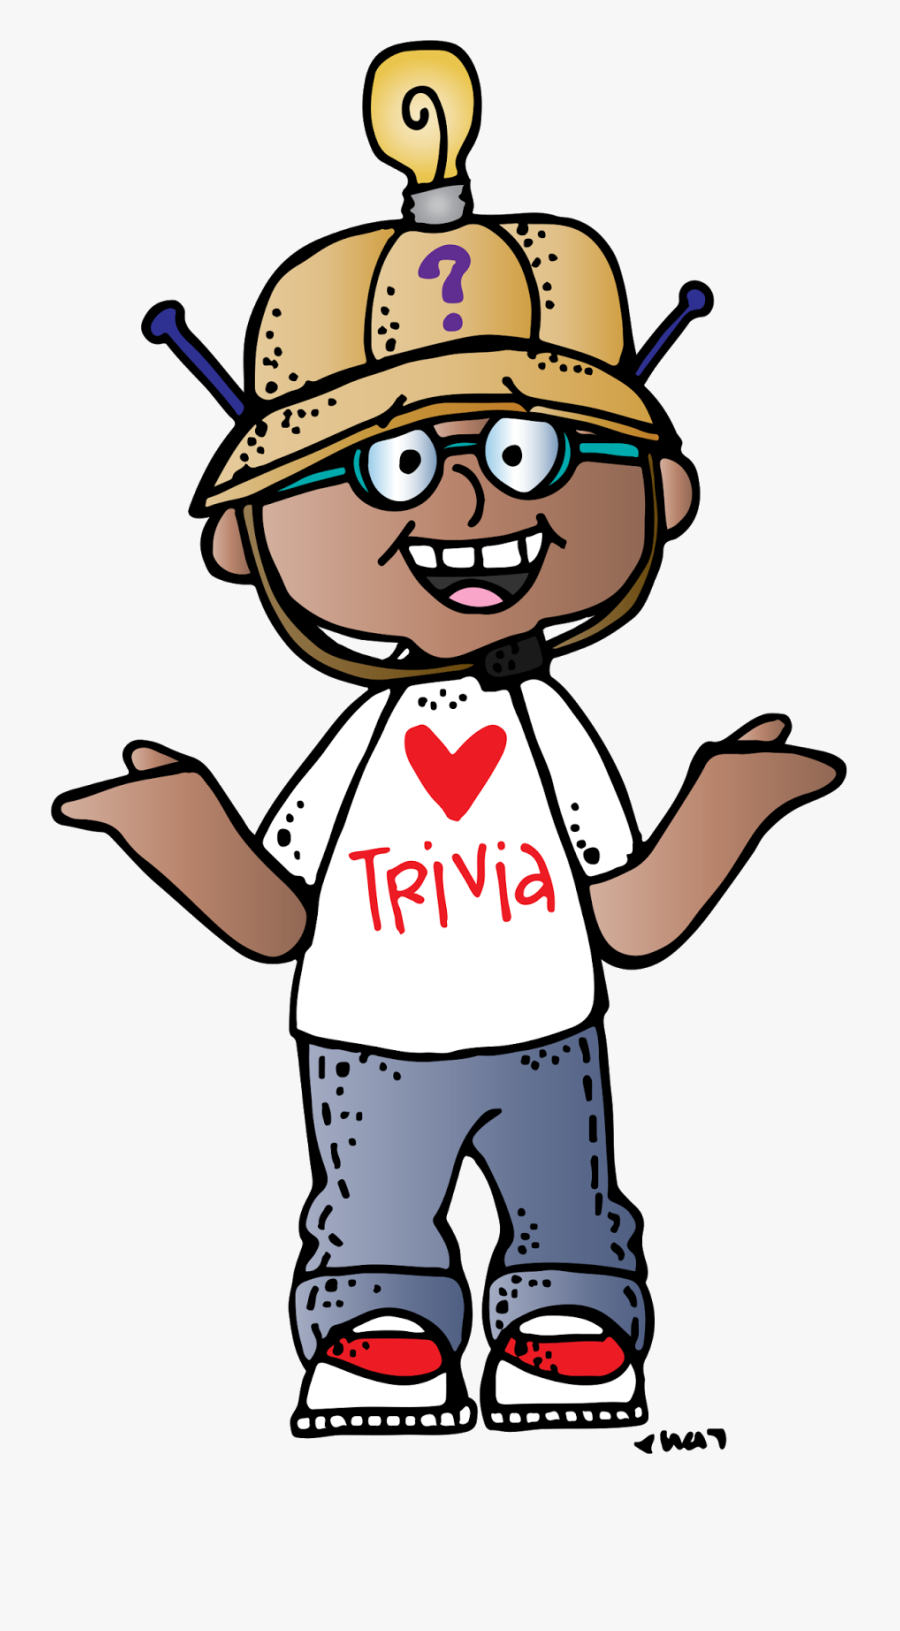 Clipart Man Thinking Of Sand And Sun - Melonheadz Trivia, Transparent Clipart